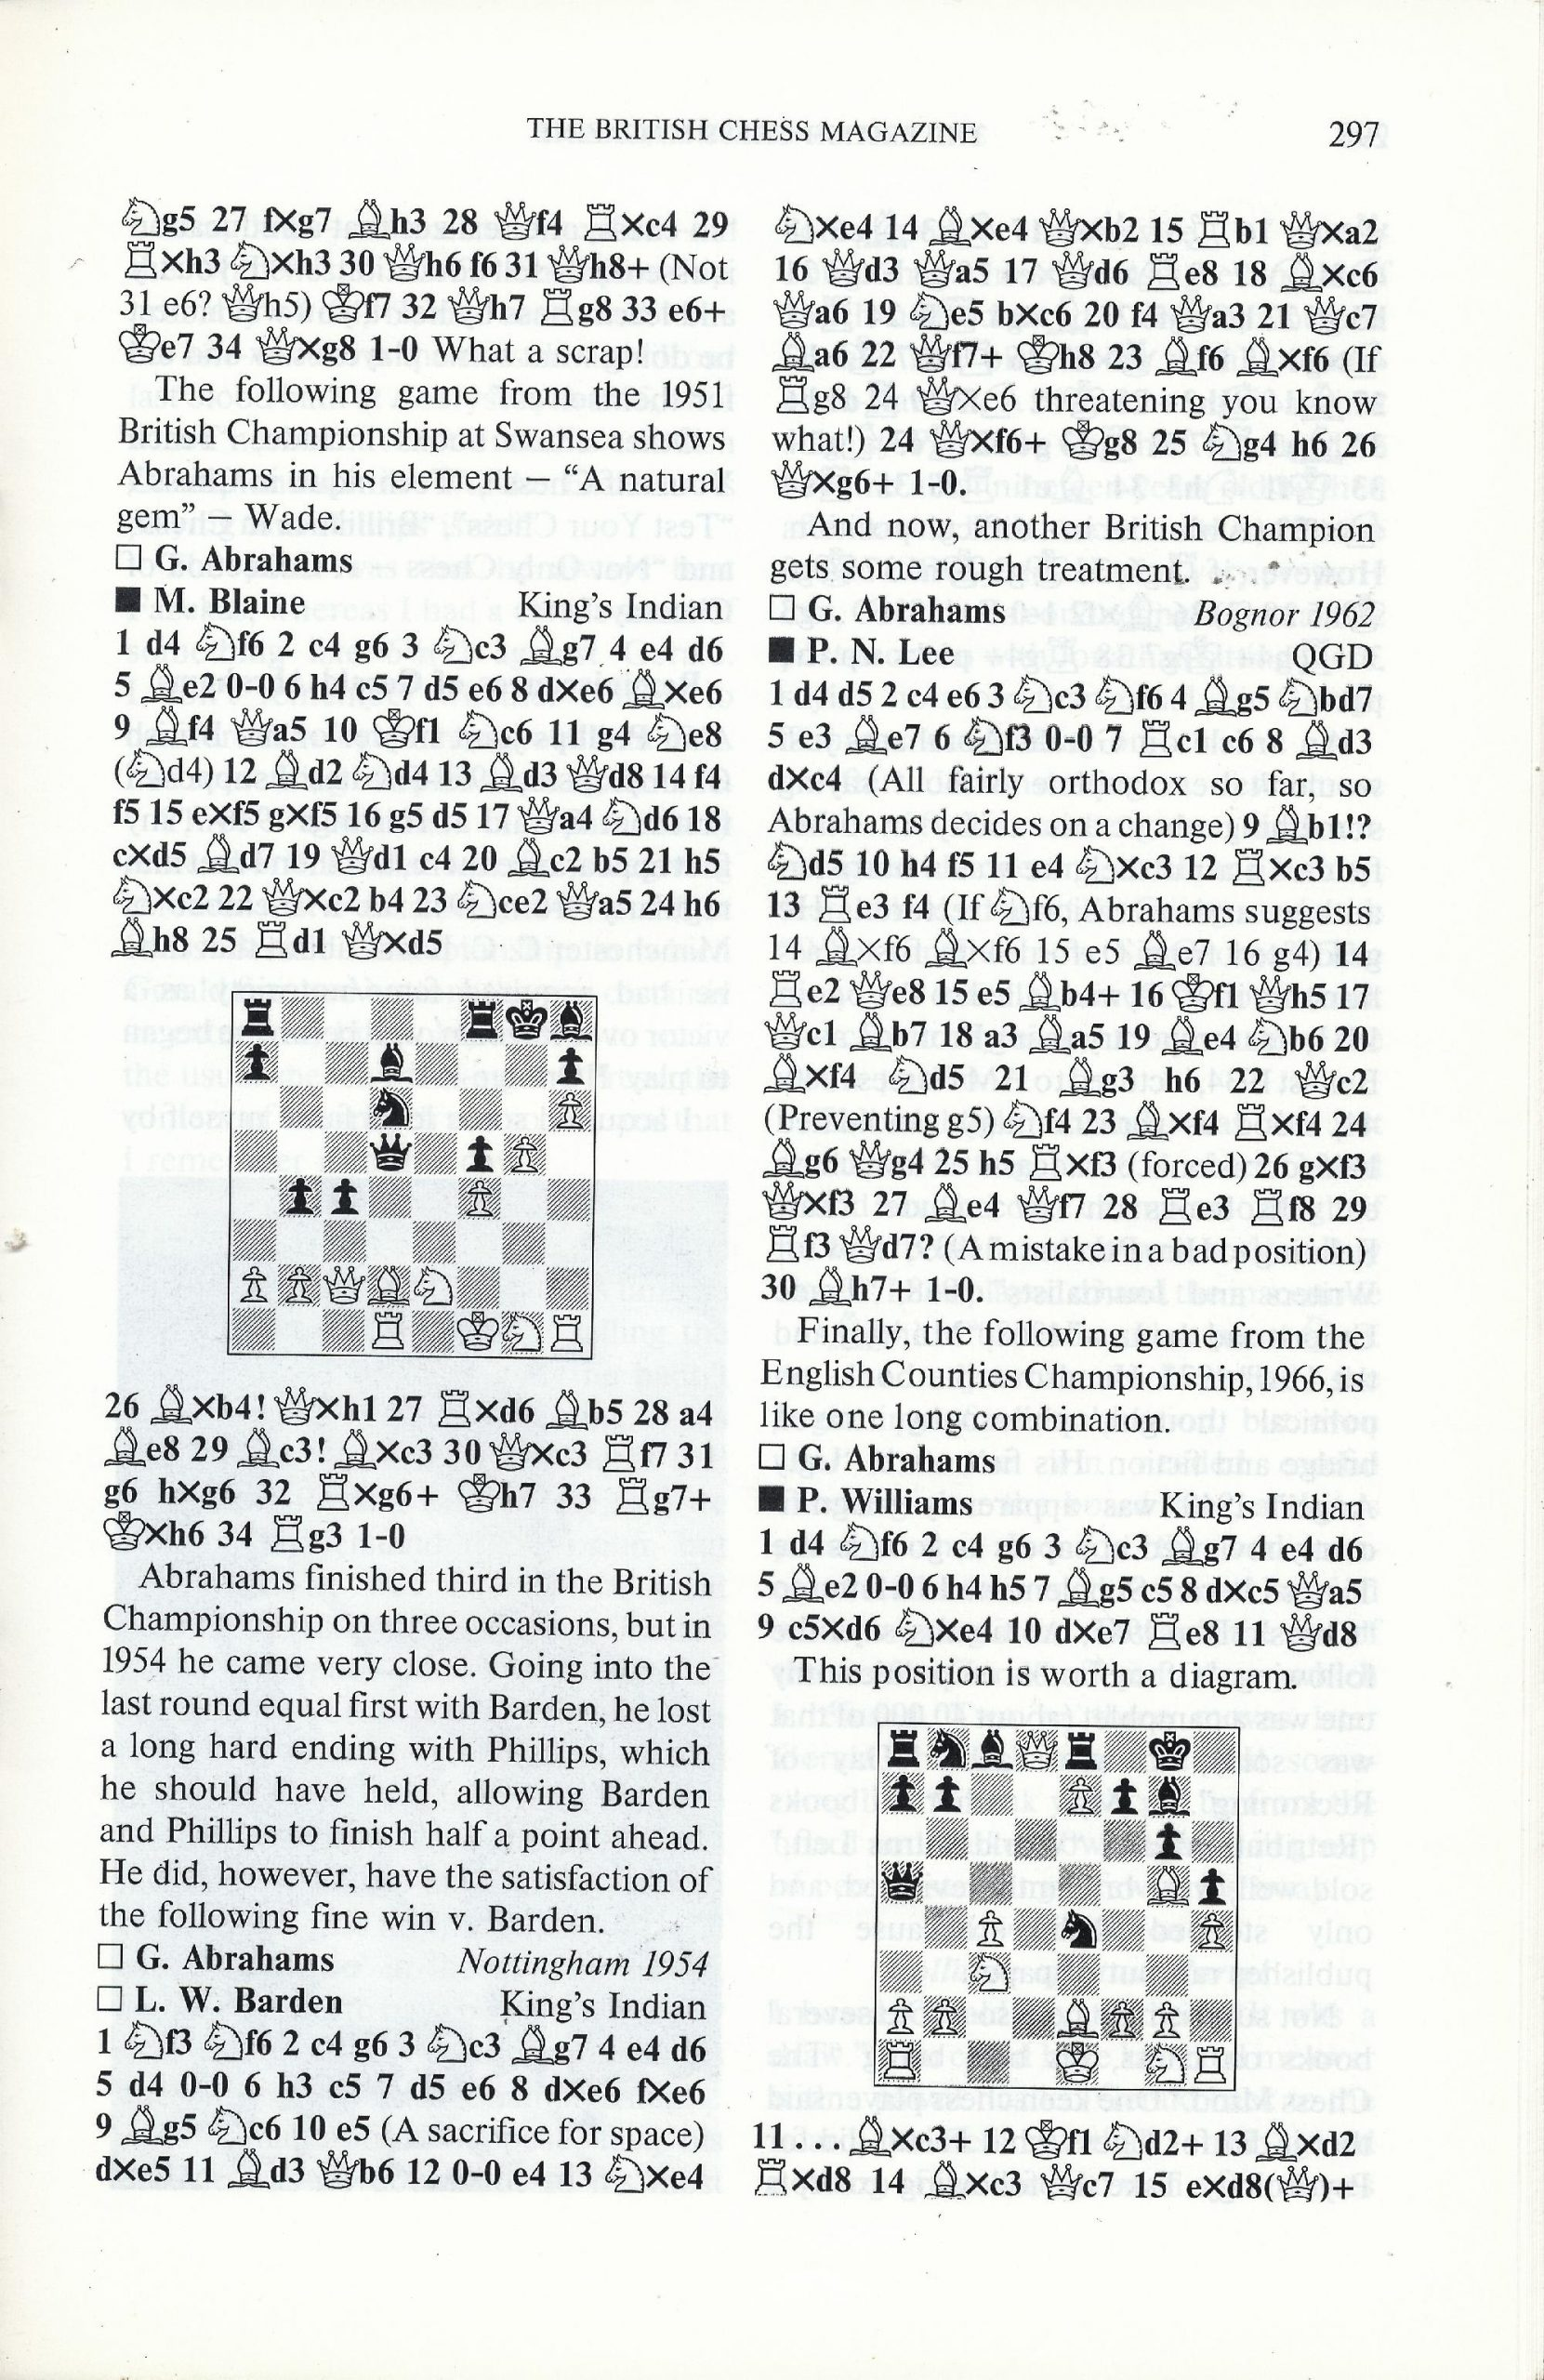 British Chess Magazine, Volume CVIII (1988), Number 7 (July), pp. 297